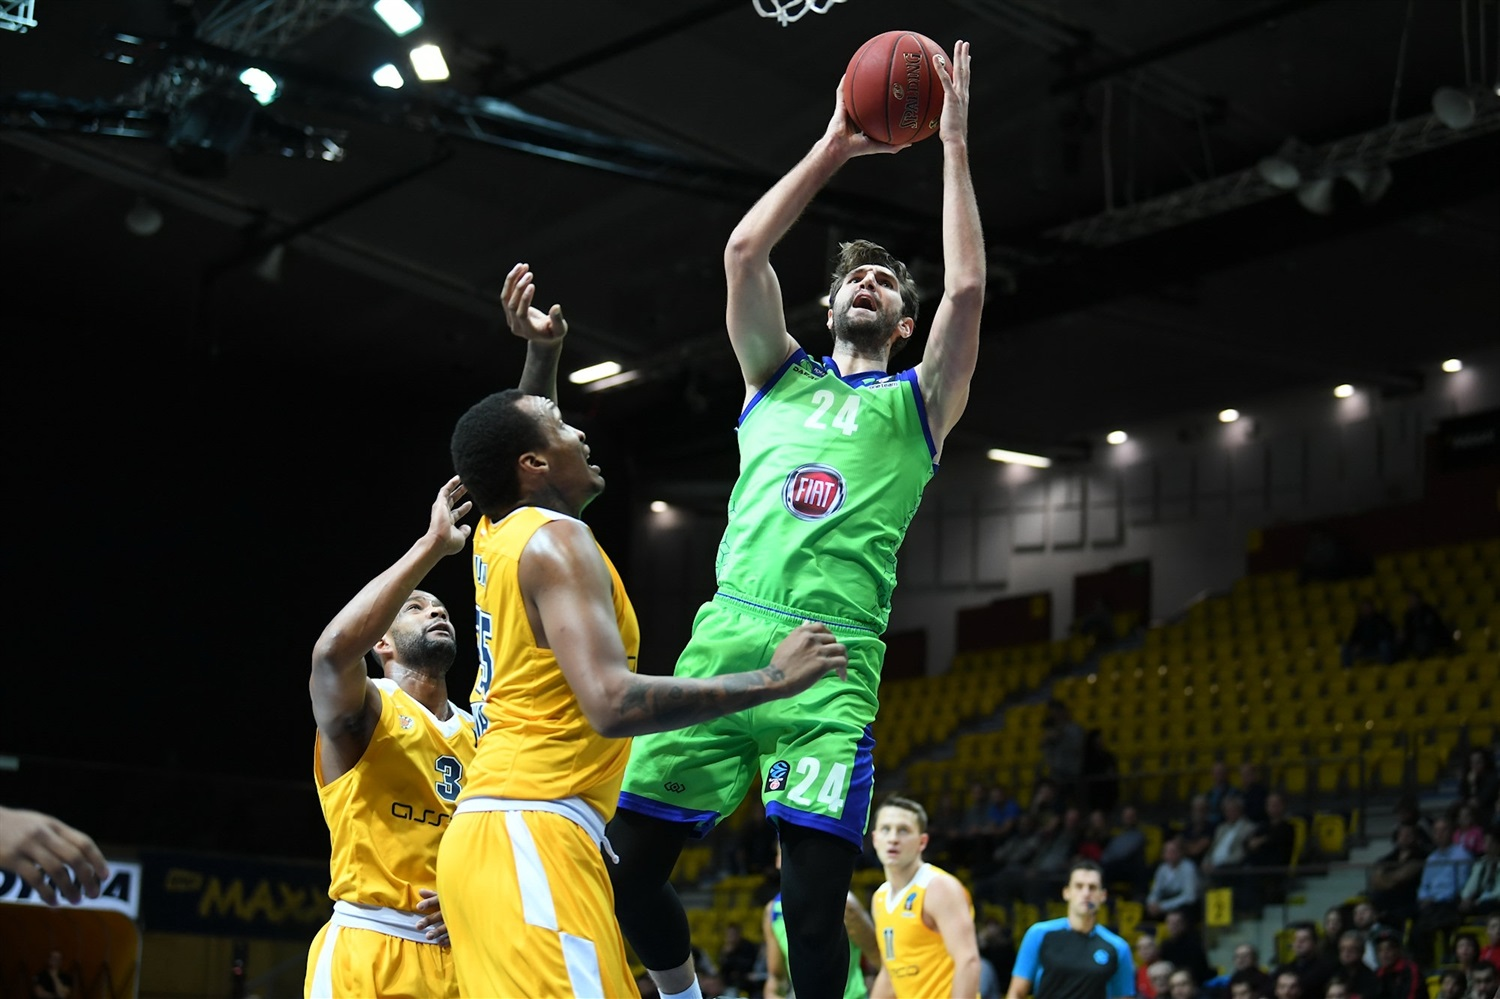 Jeff Withey - Tofas Bursa (photo Ozan Demir - Tofas) - EC18